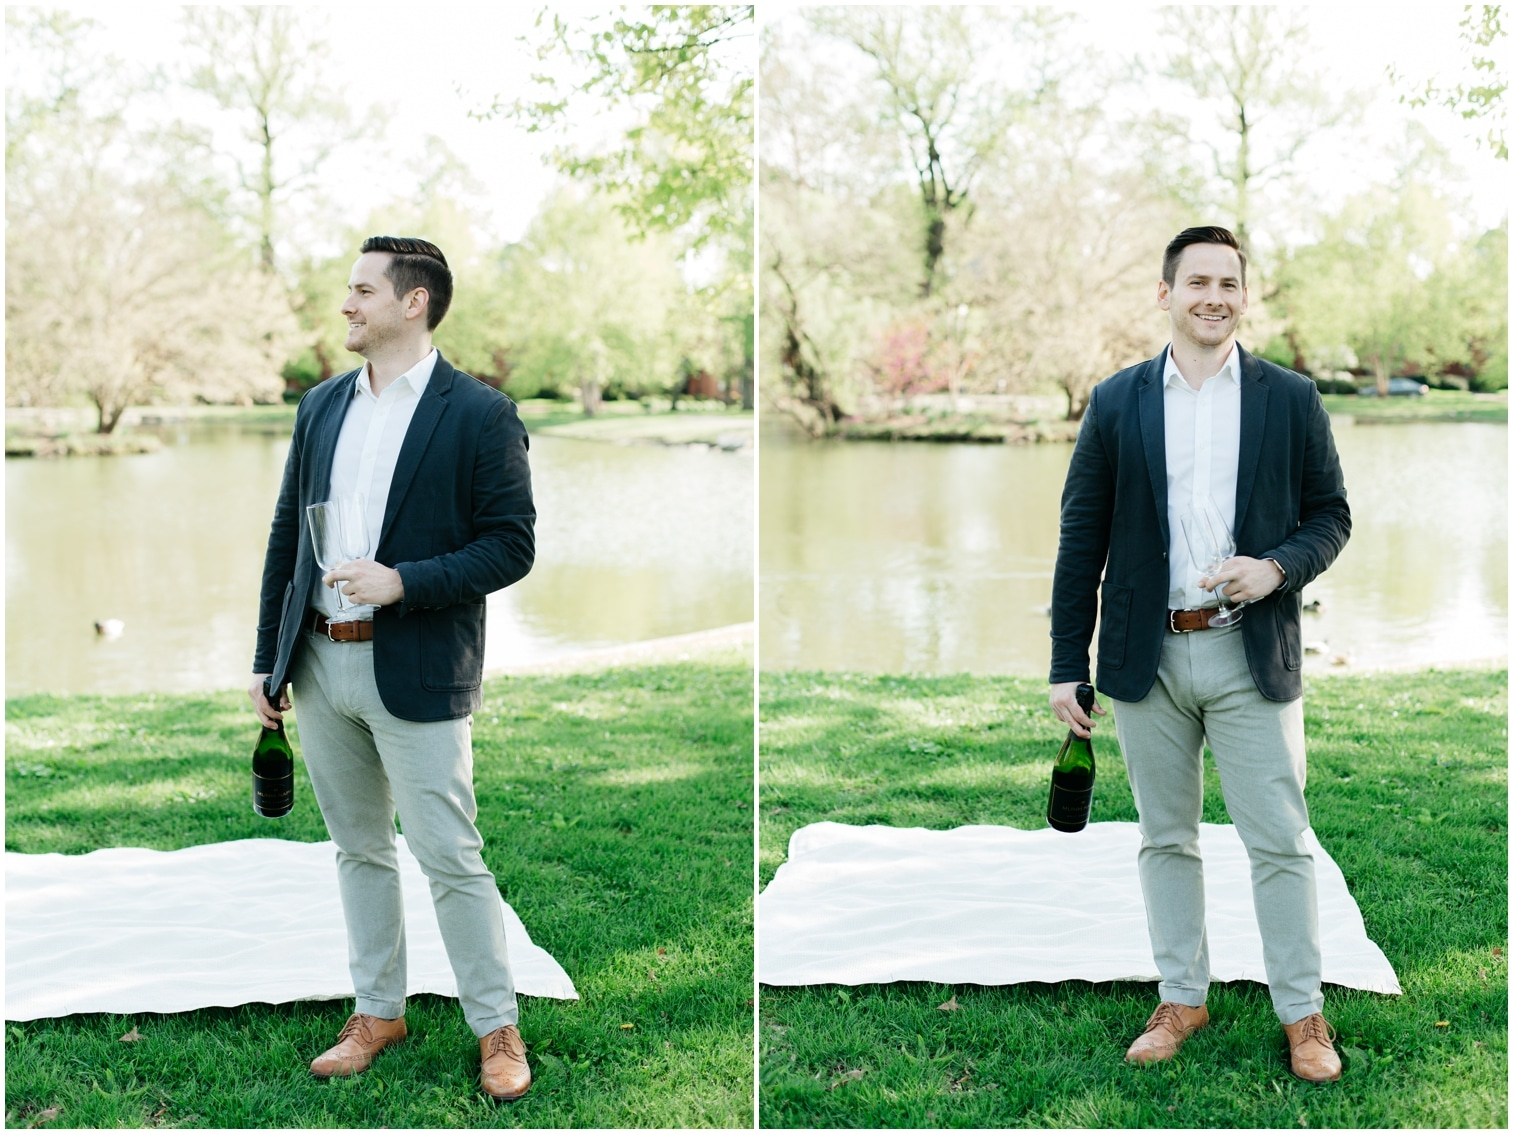 adam lowe photography, engagement session, engaged, bride and groom. wedding, stylish, love, columbus, ohio, photographer, outdoors, asos, german village, columbus mile